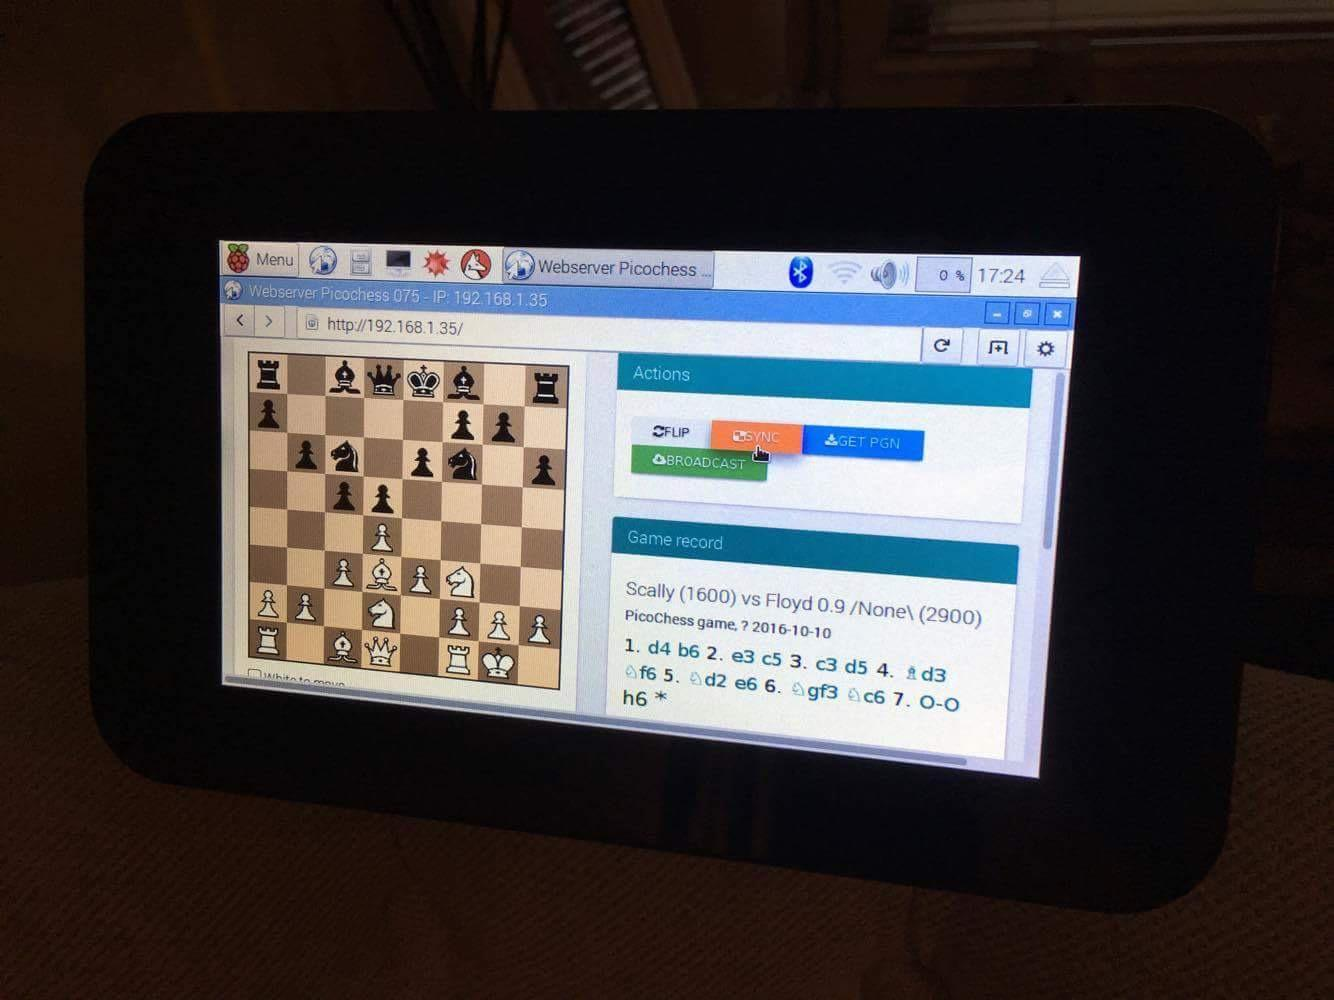 Picochess v0.75 running on official RaspberryPi Display